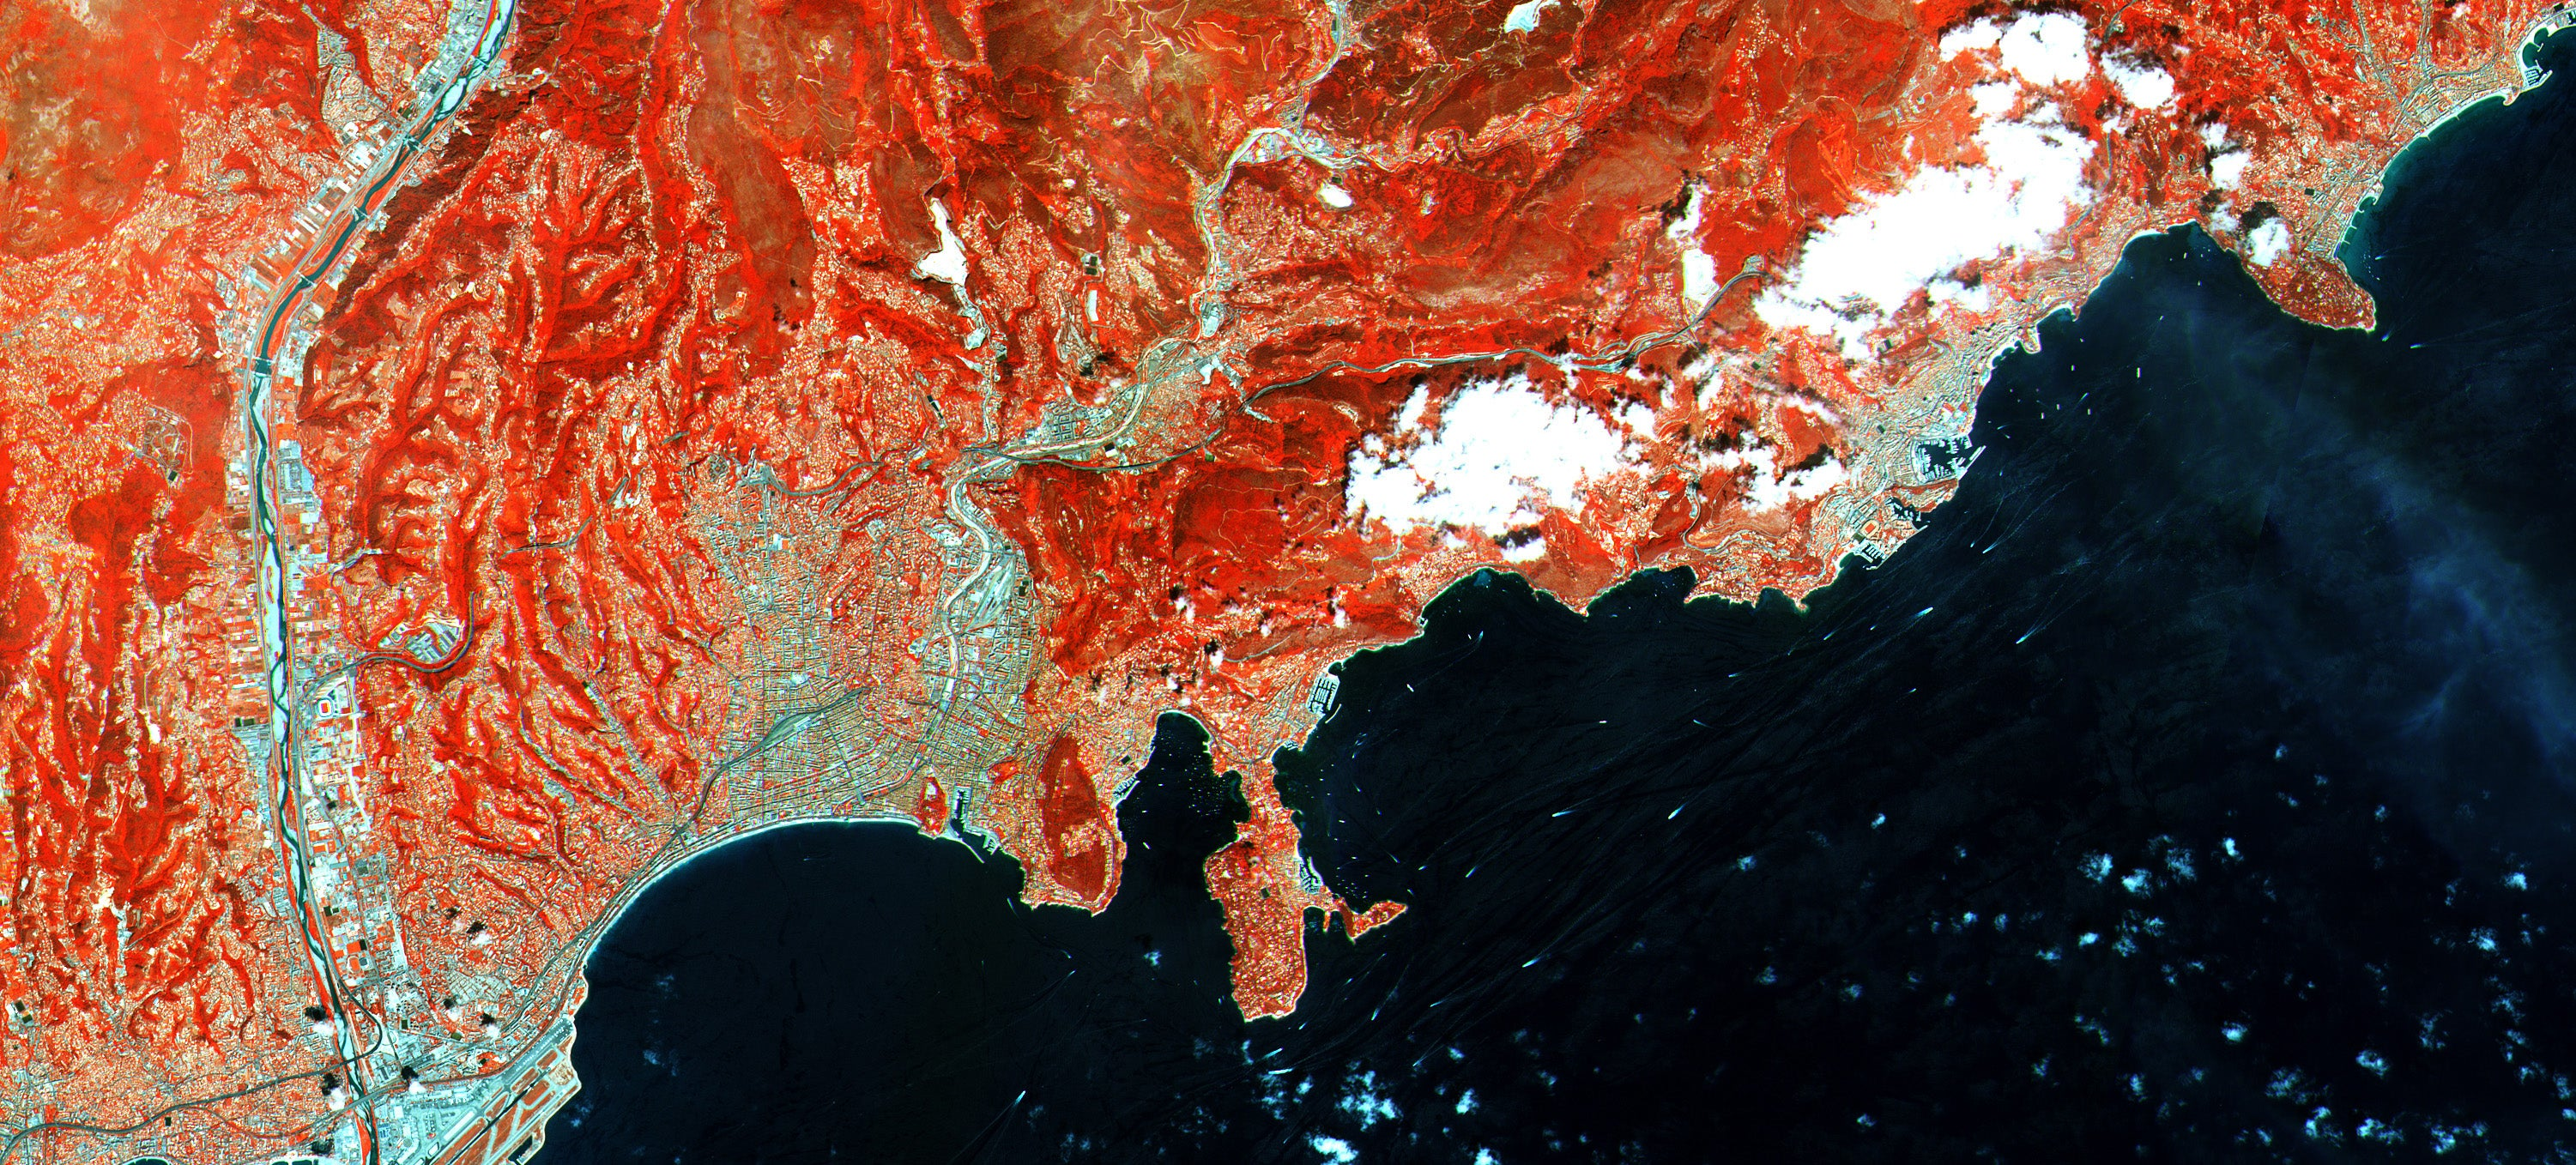 These Are the First Images From ESA's Sentinel-2A Satellite